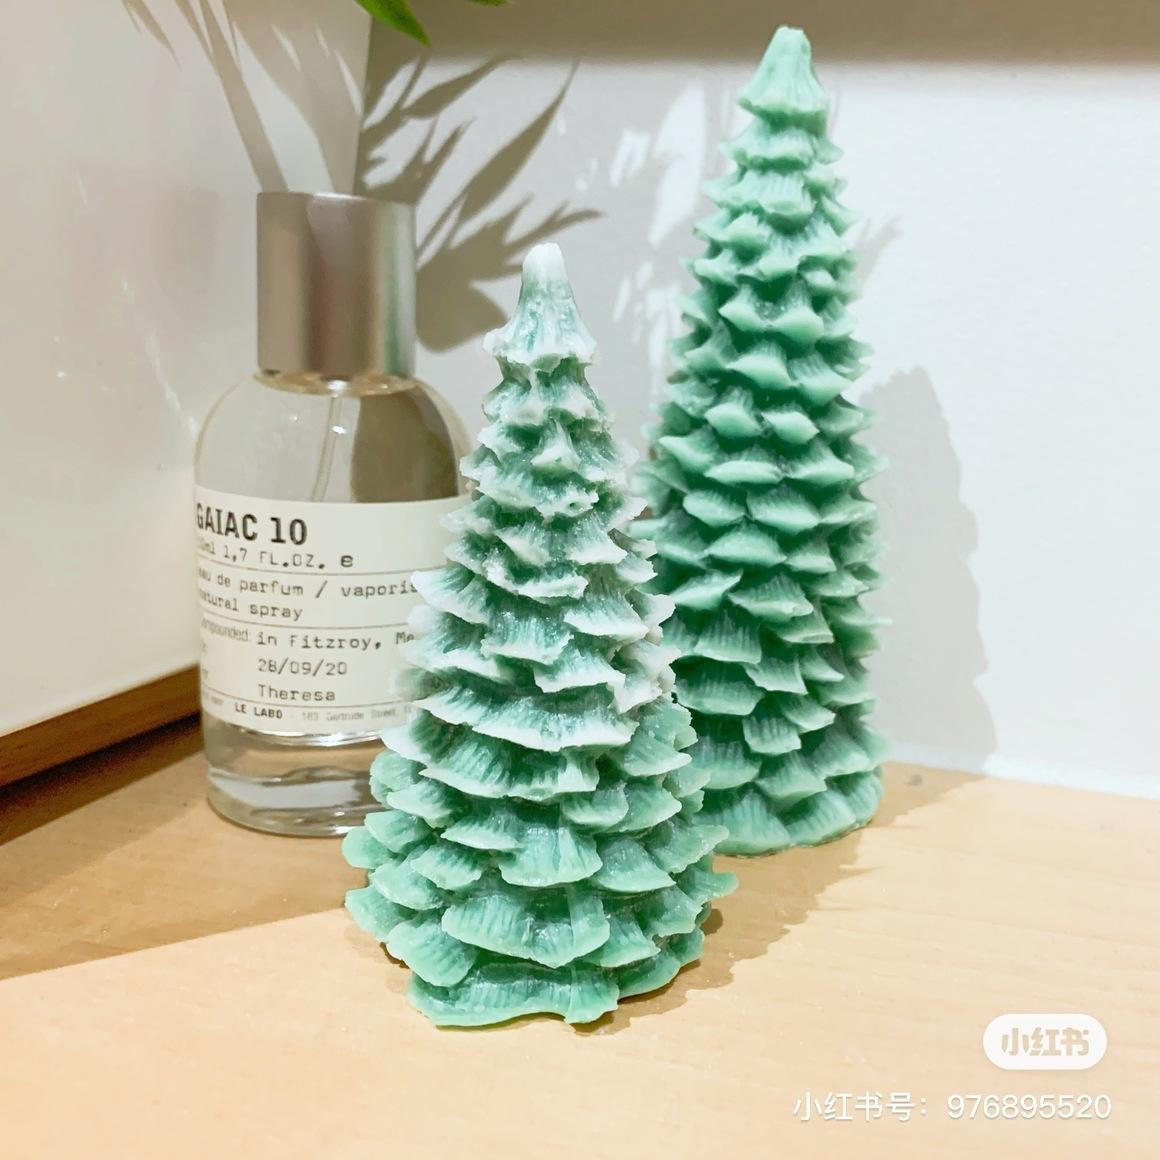 Christmas Tree Scented Candle| Small | Trada Marketplace